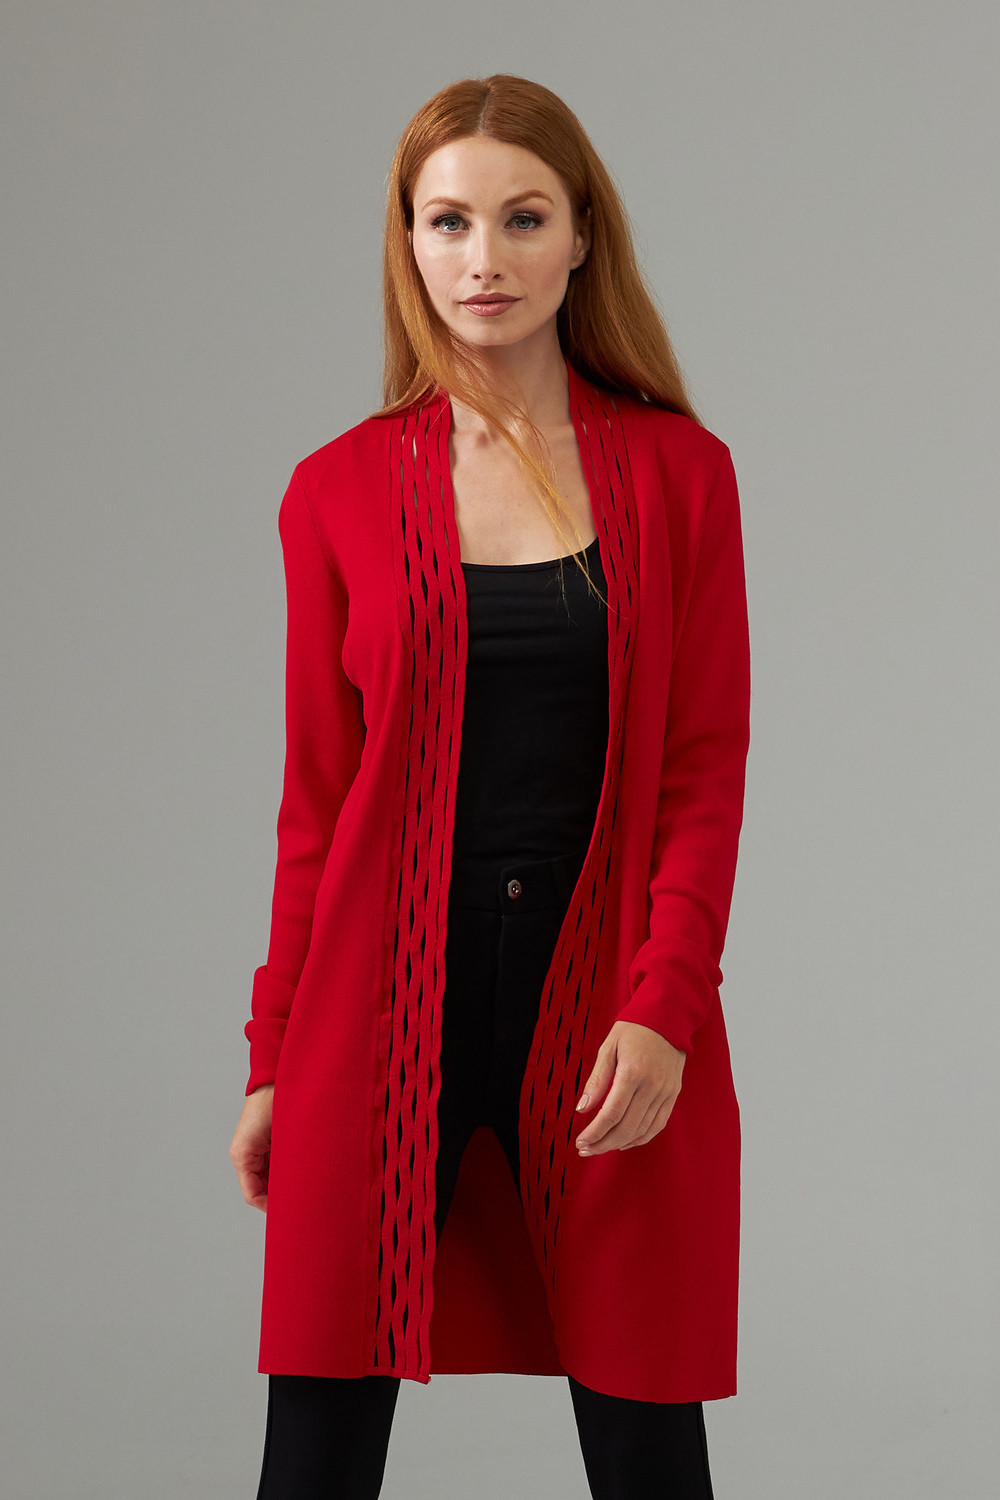 Joseph Ribkoff Cardigans Rouge A Levres 173 Style 203094